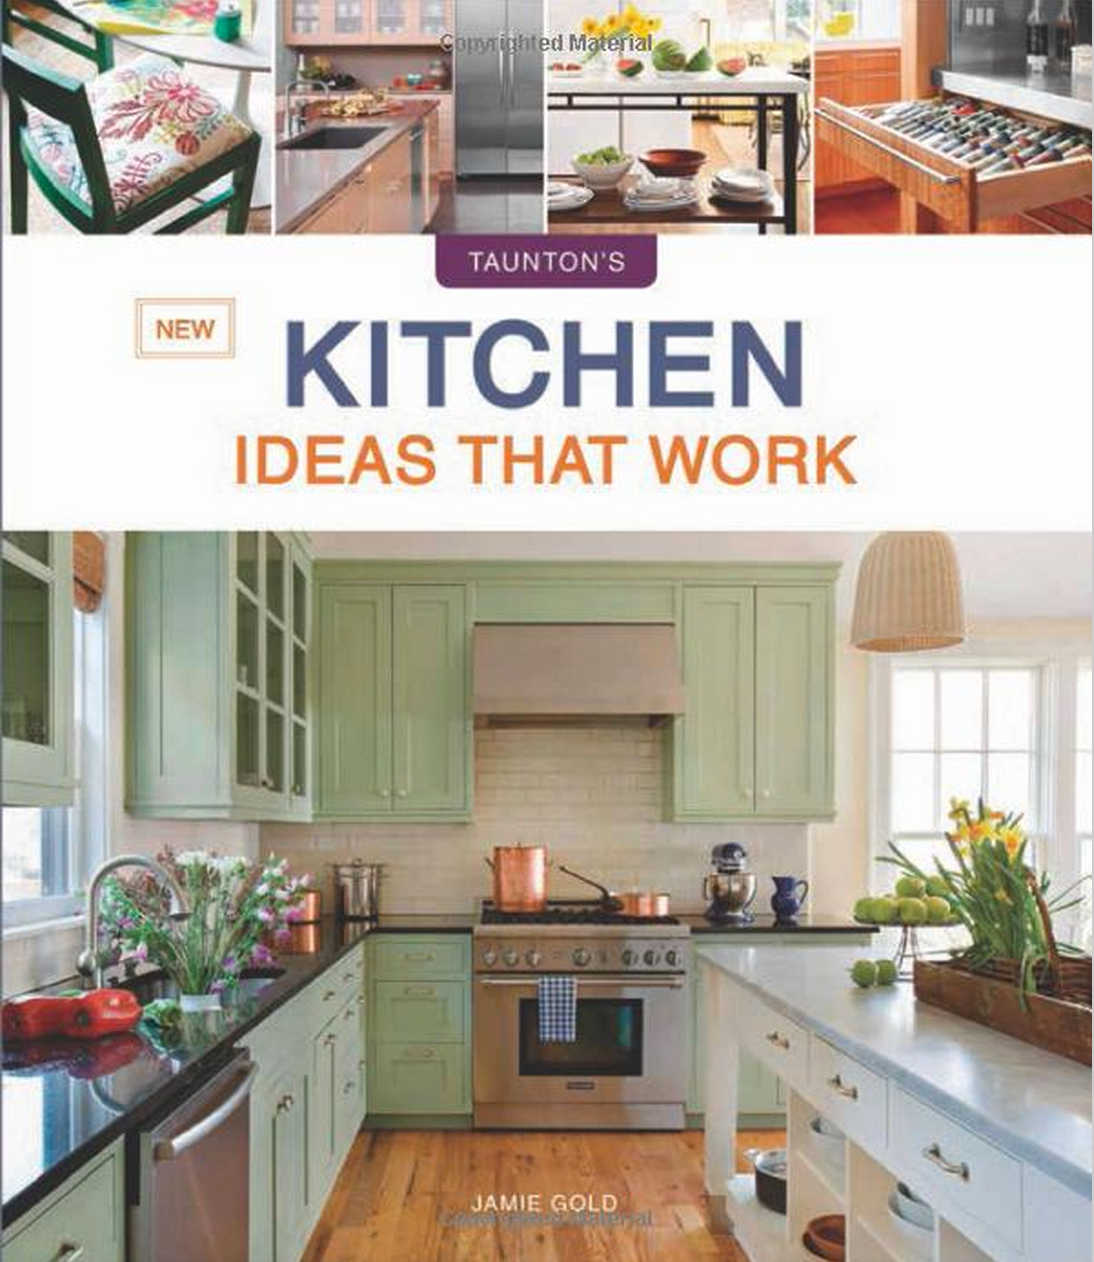 Charming As Iu0027ve Said Before On This Blog, Iu0027ve Lost A Friendship Over Choosing Not  To Review A Book On Kitchen Design Due To Its Errors And Overall Sub Par  Quality ... Part 5